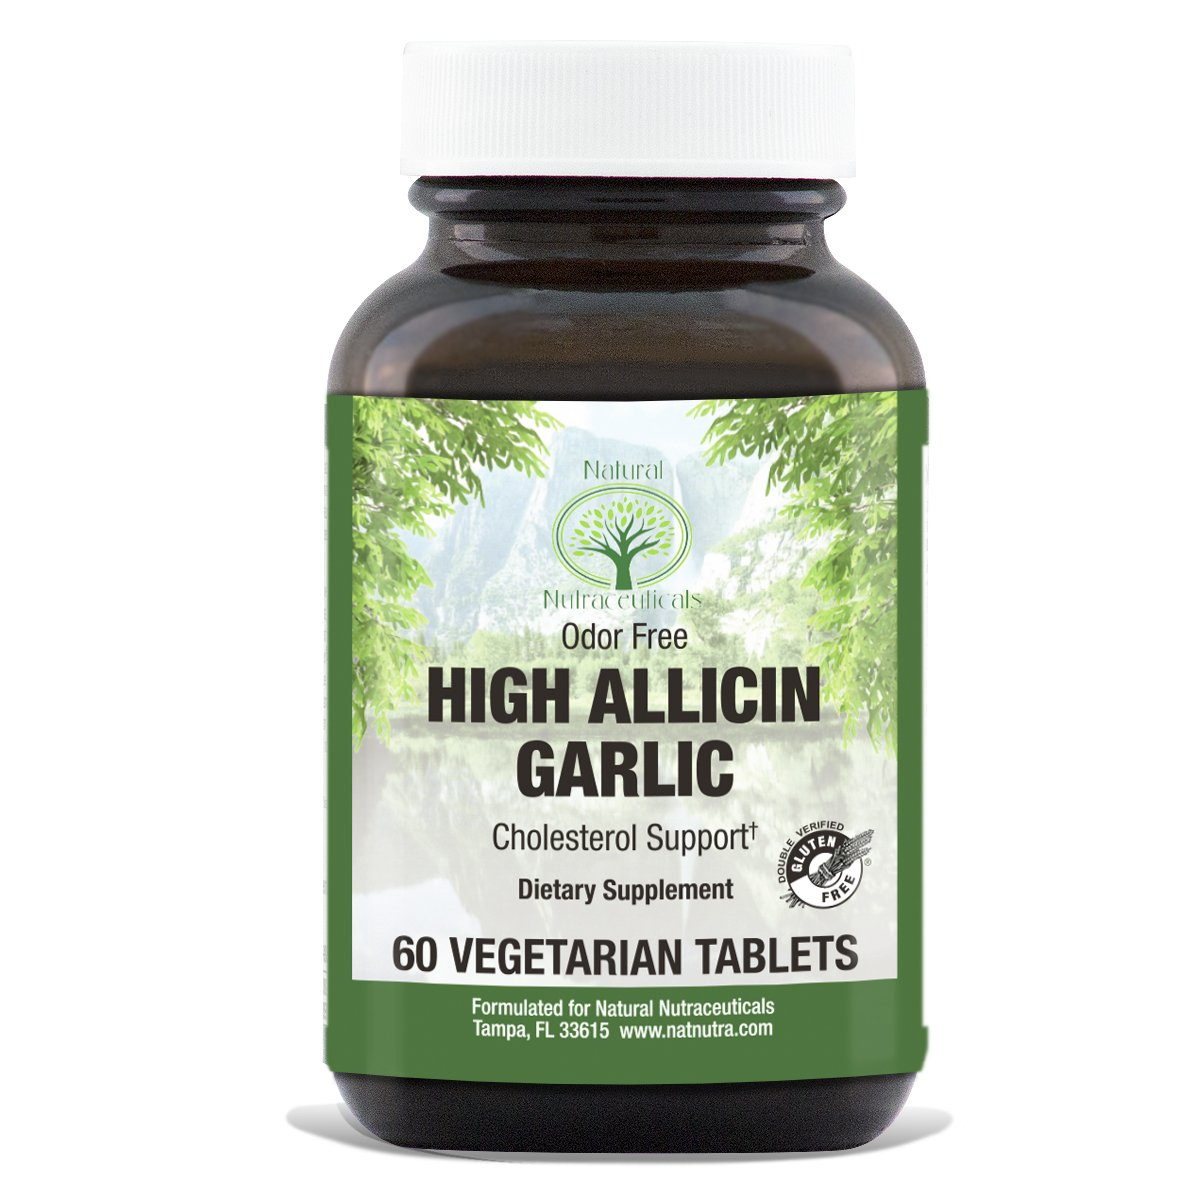 Natural Nutra High Allicin Garlic